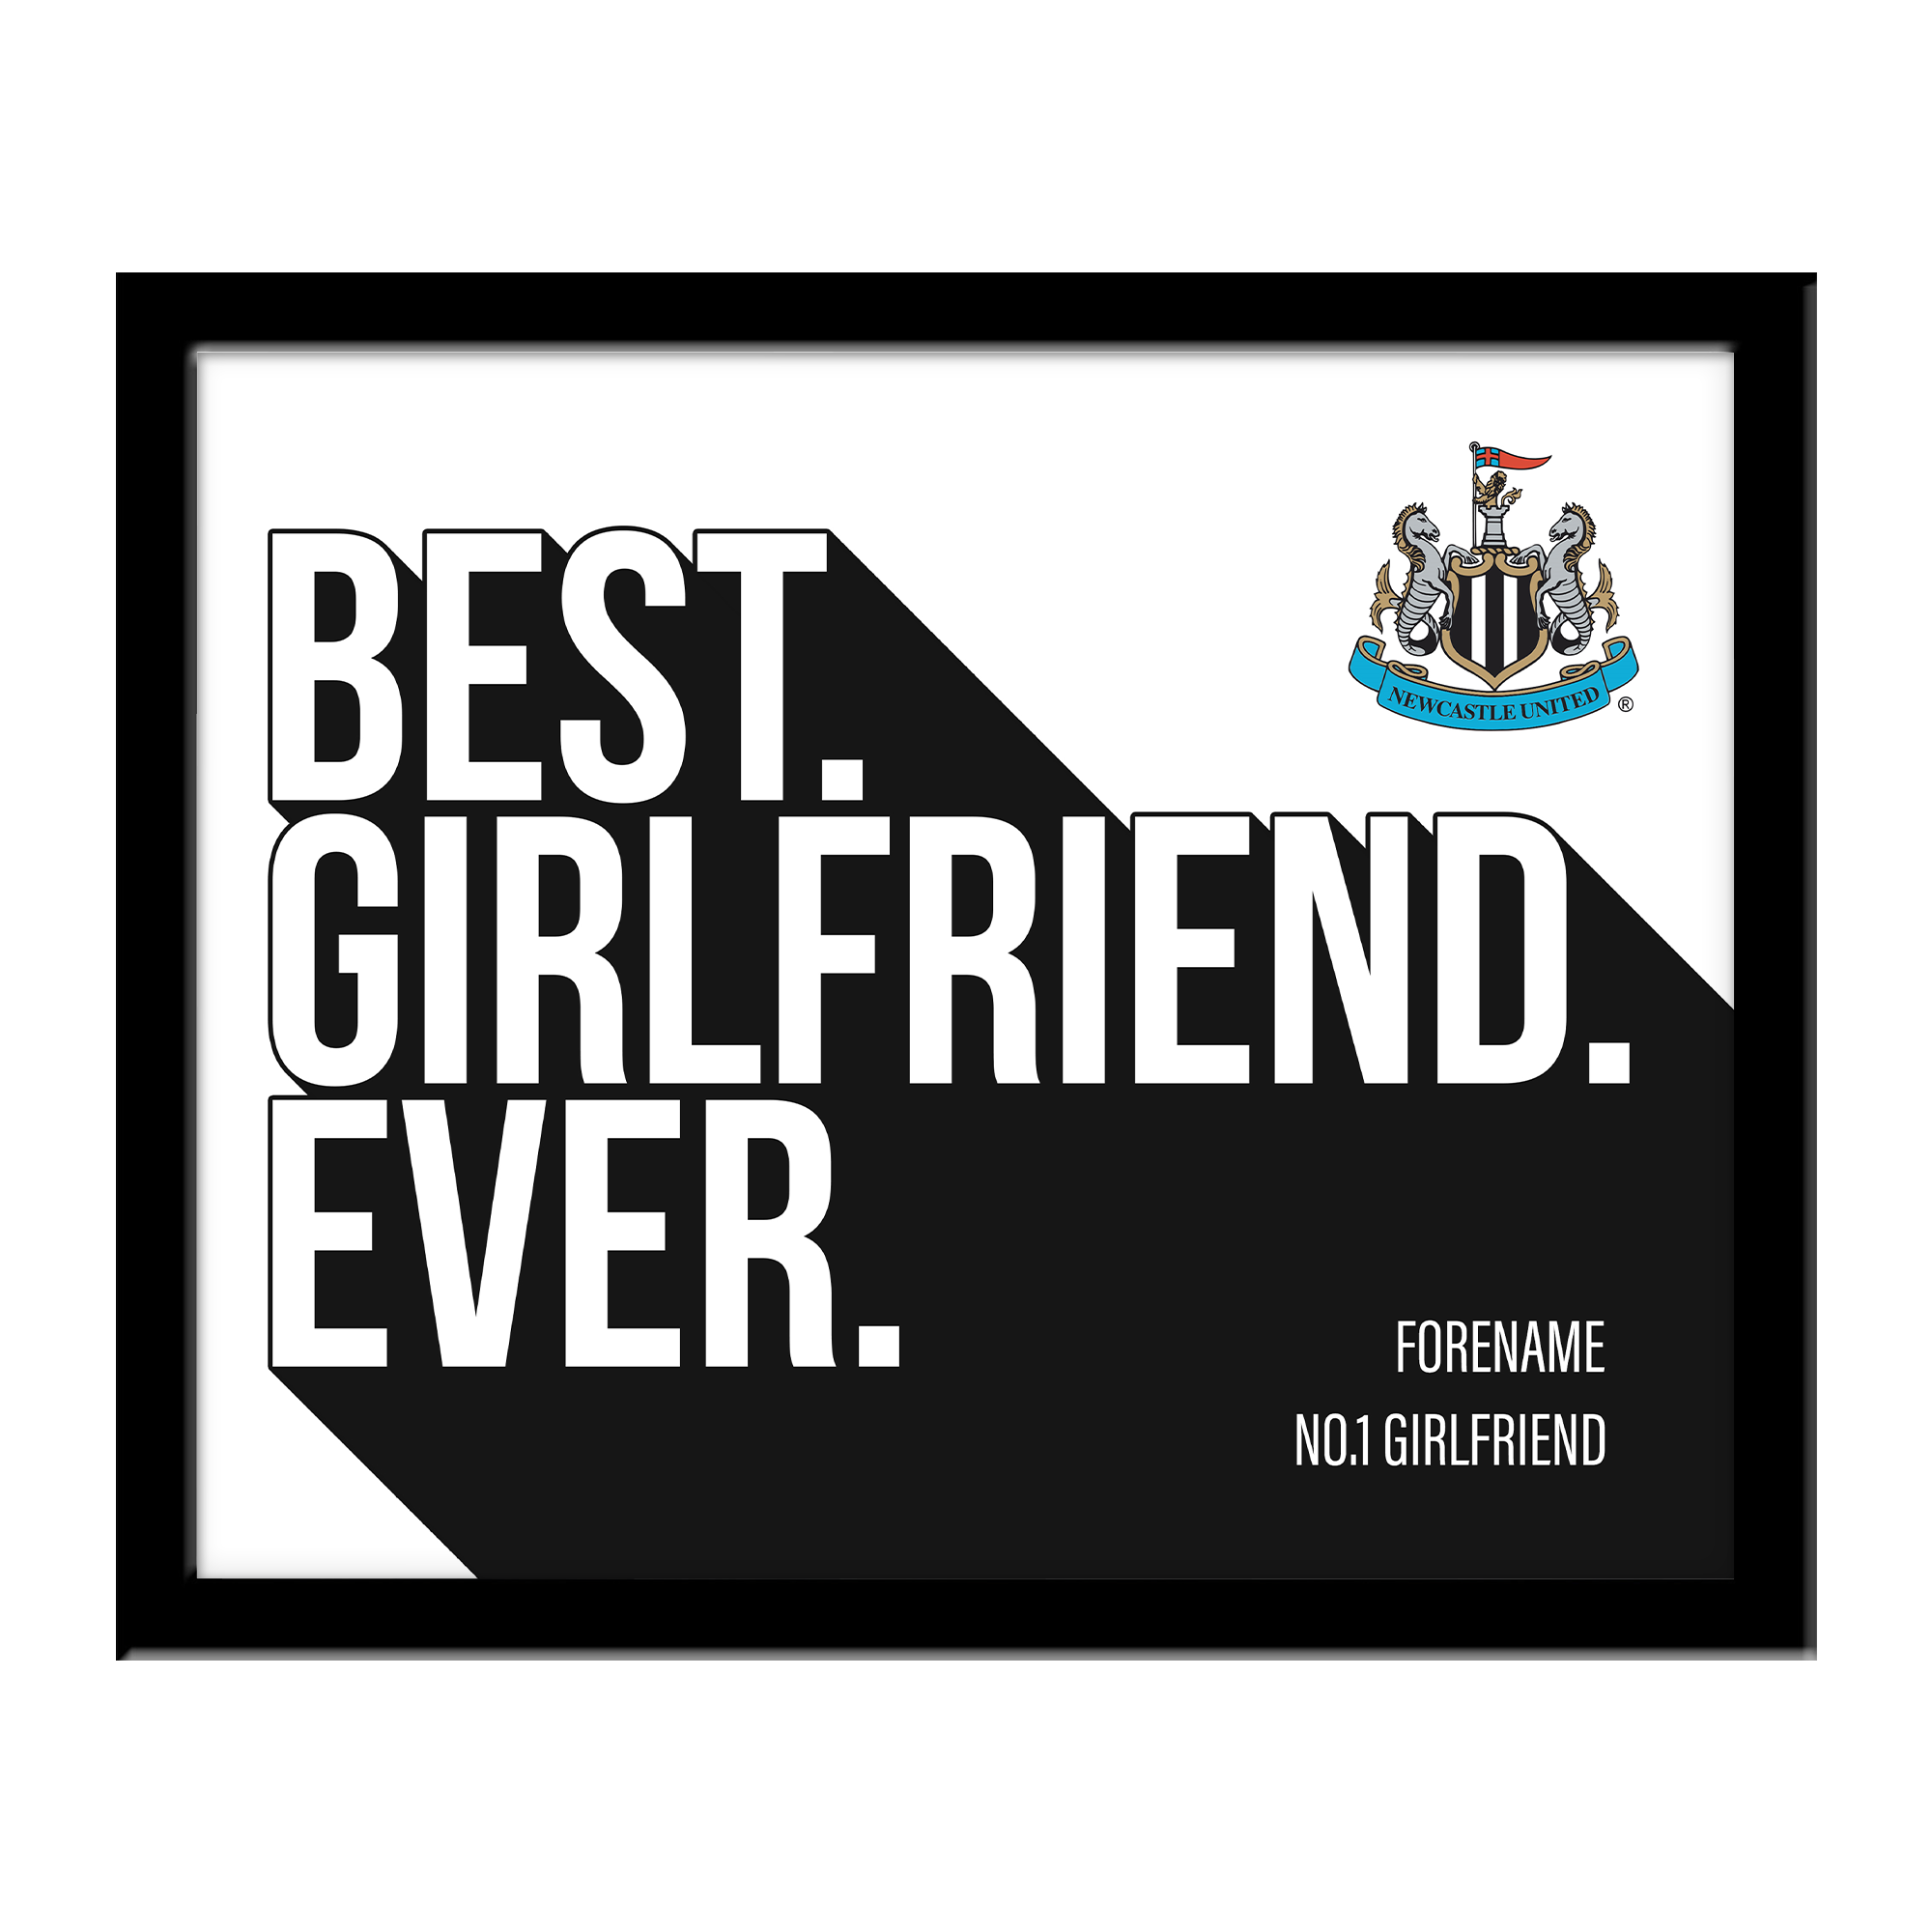 Newcastle United FC Best Girlfriend Ever 10 x 8 Photo Framed